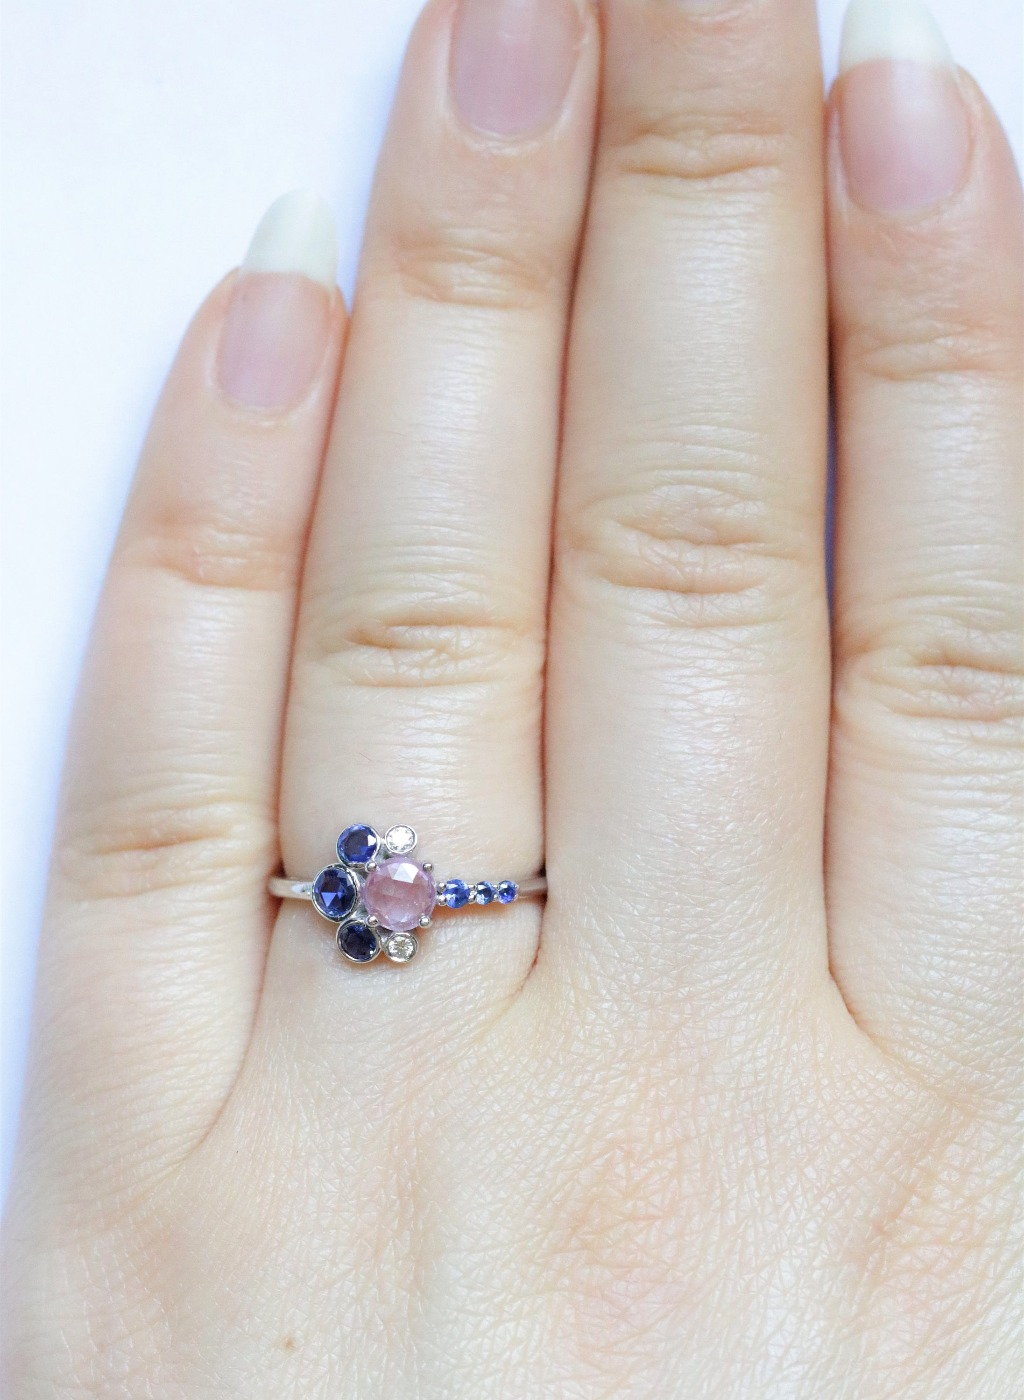 Hand-crafted Cluster ring with Colorful Sapphires. Extra low set for Comfort and Modern Beauty.